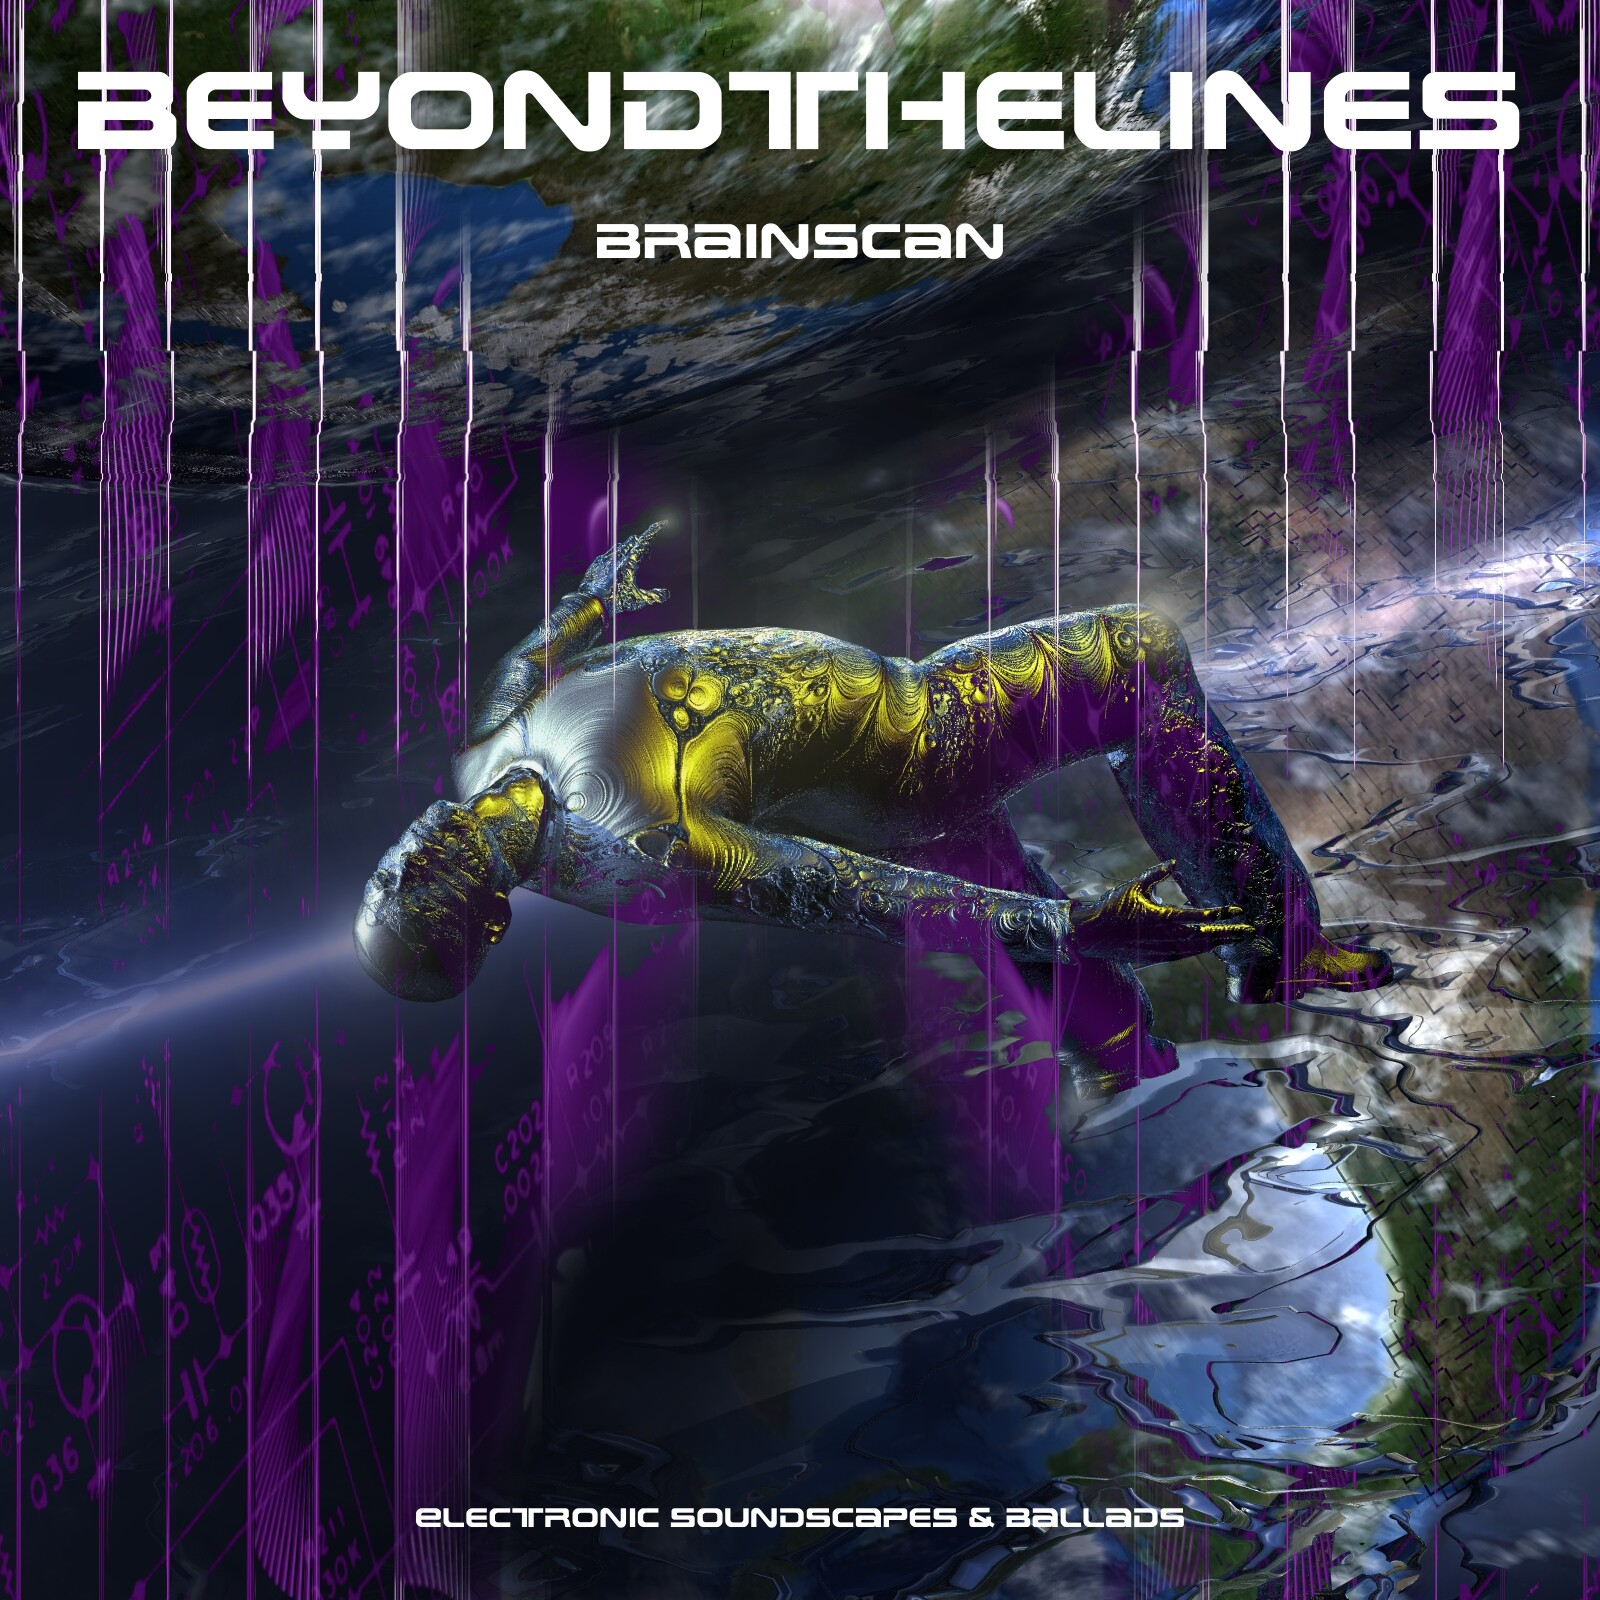 CD Cover  https://store.cdbaby.com/cd/beyondthelines9